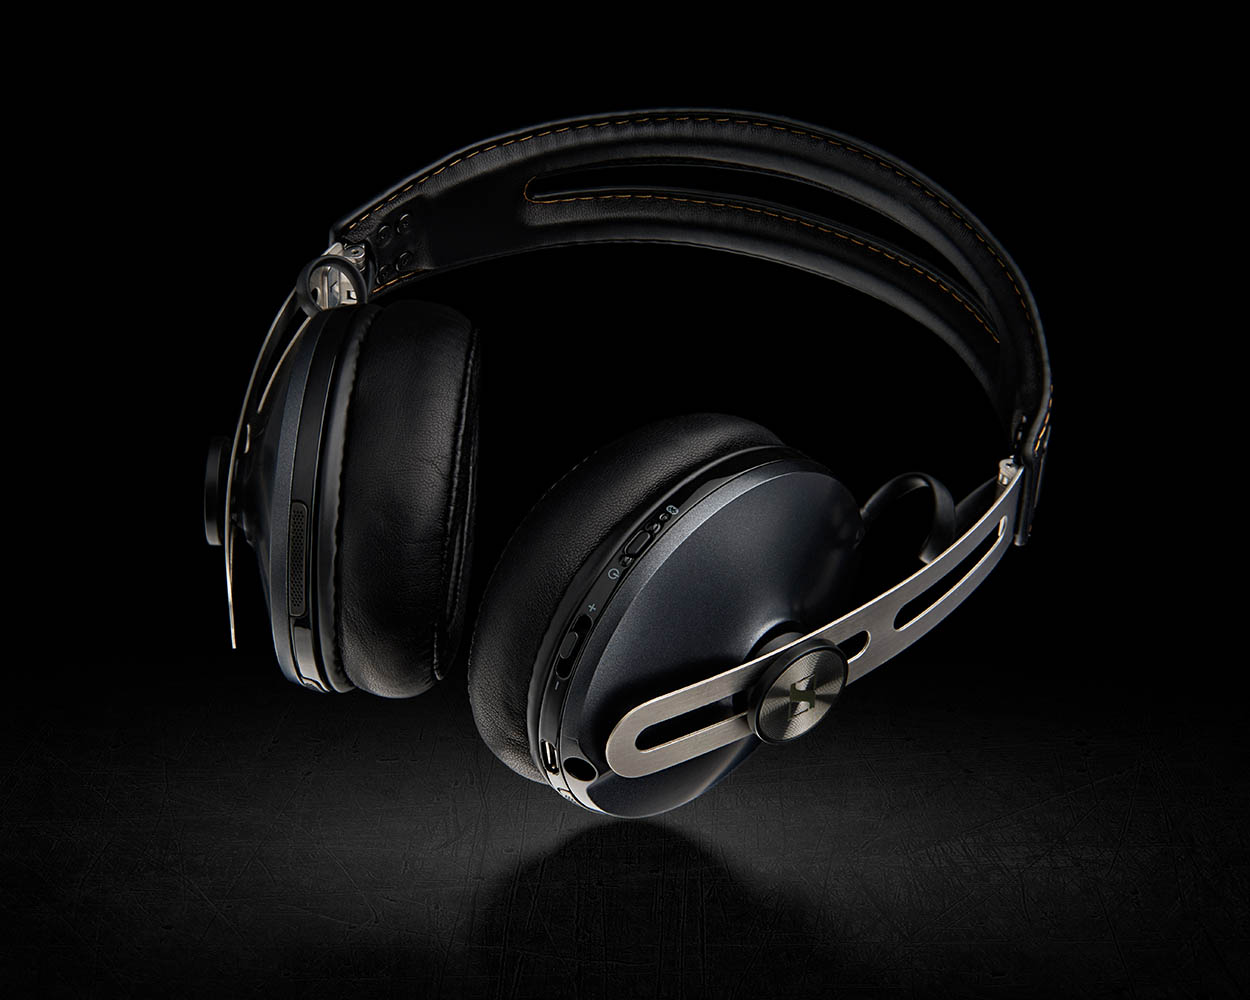 paul_christey_photography_brisbane_product_sennheiser_momentum_low-res